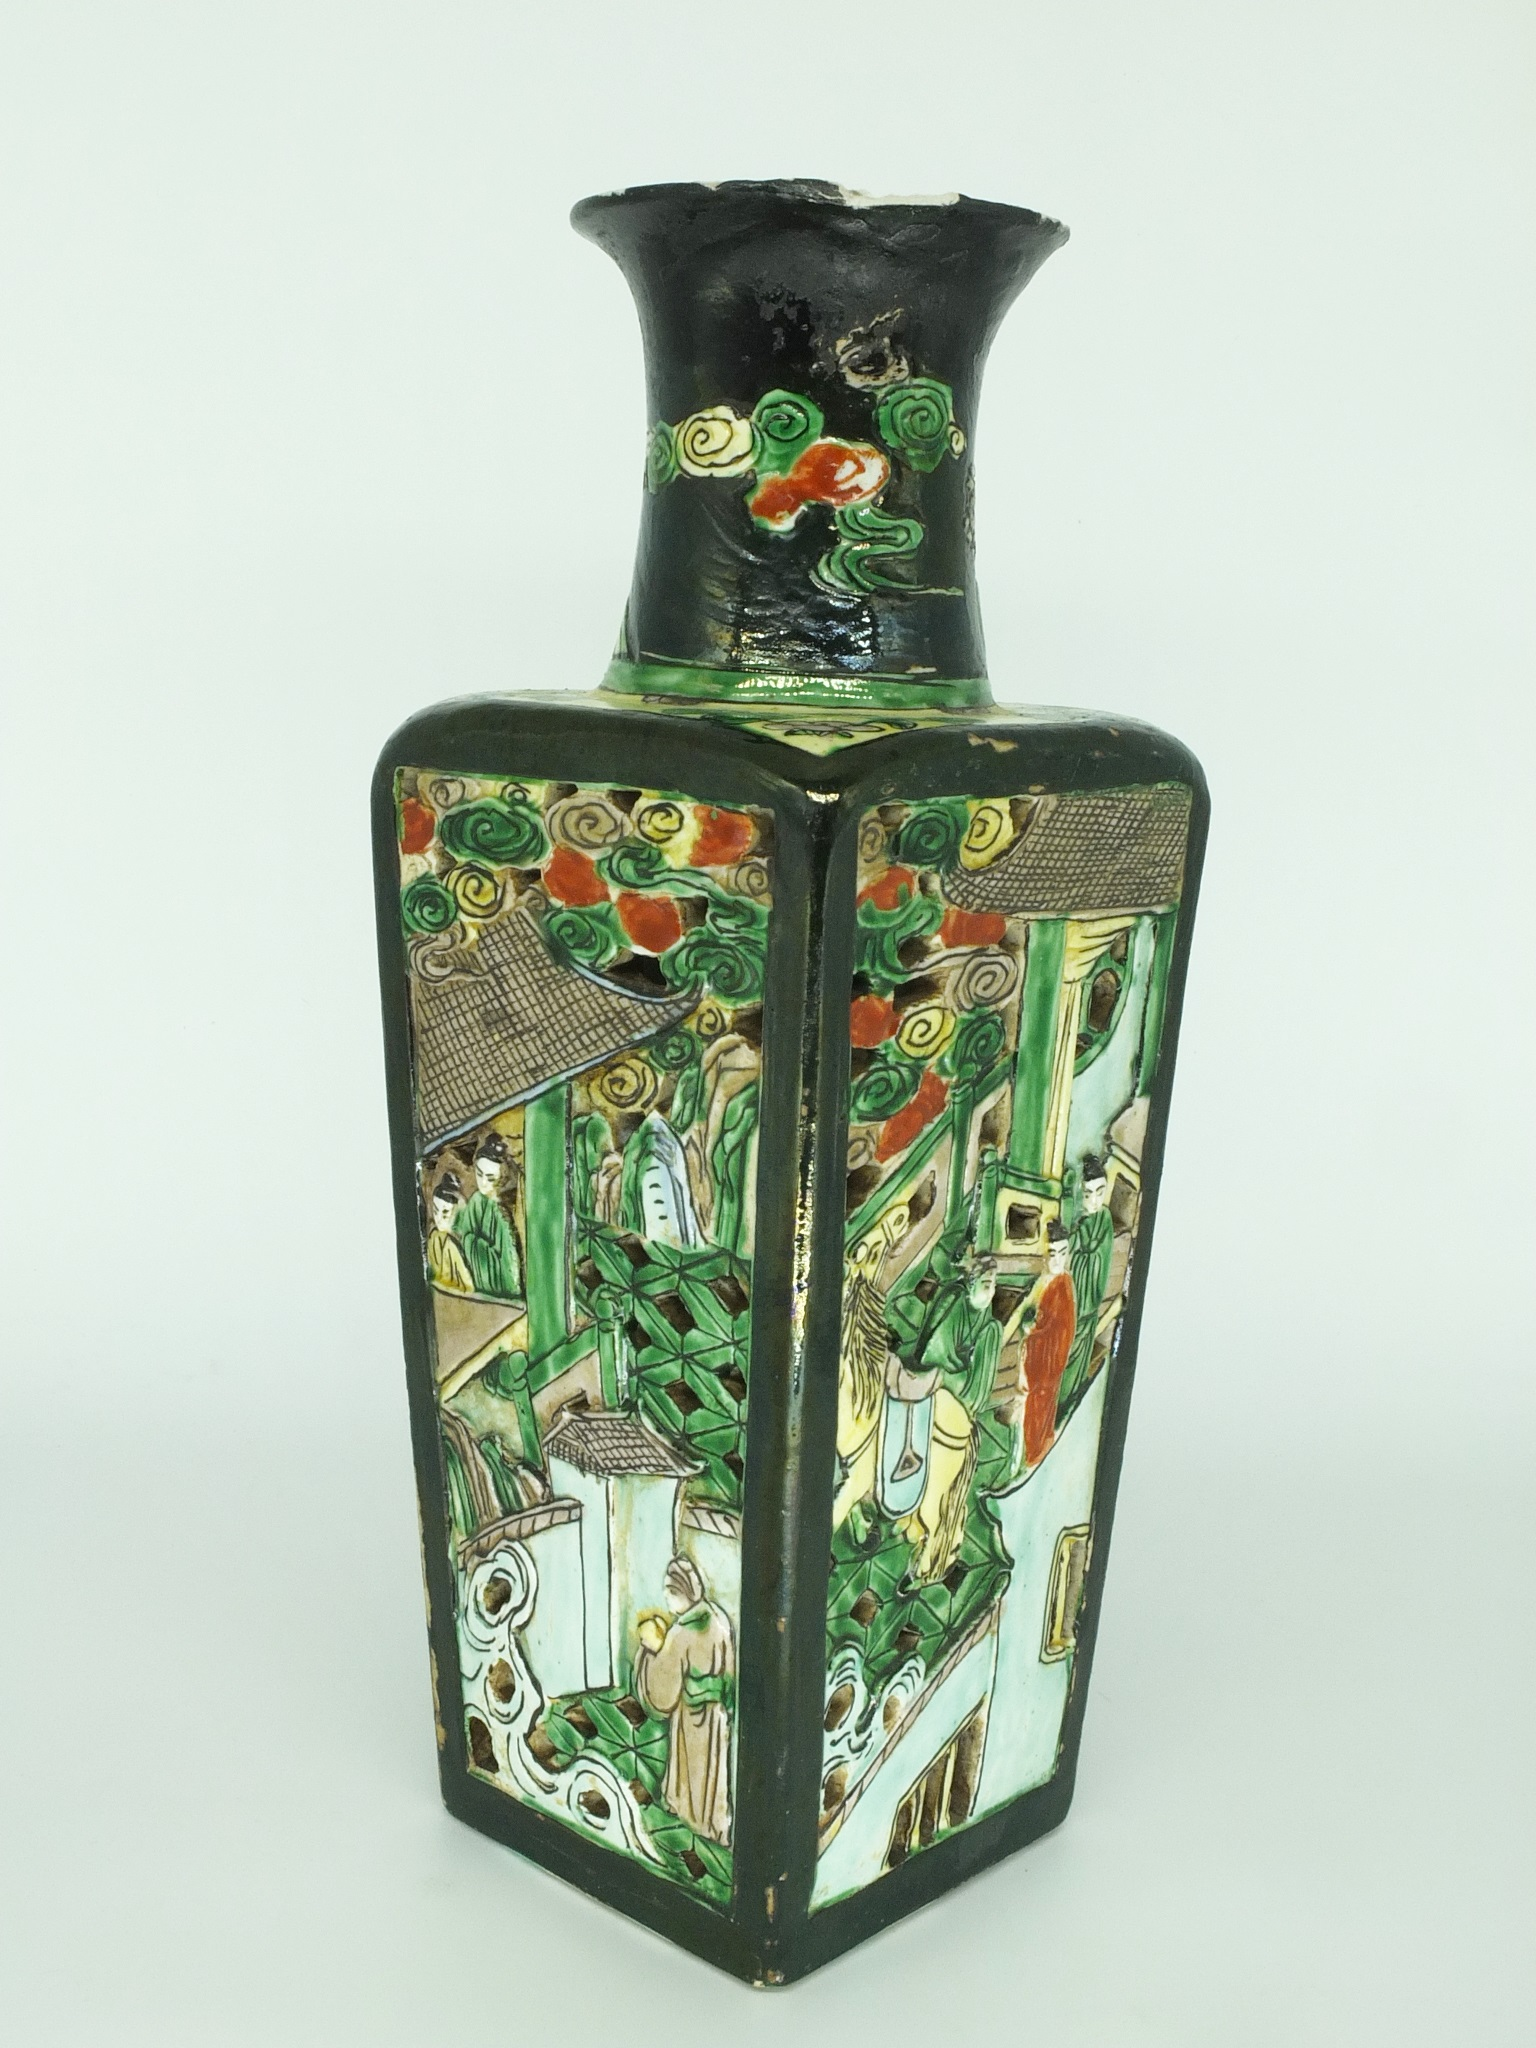 'Chinese Famille Verte Reticulated Square Vase, Late 19th or Early 20th Century'